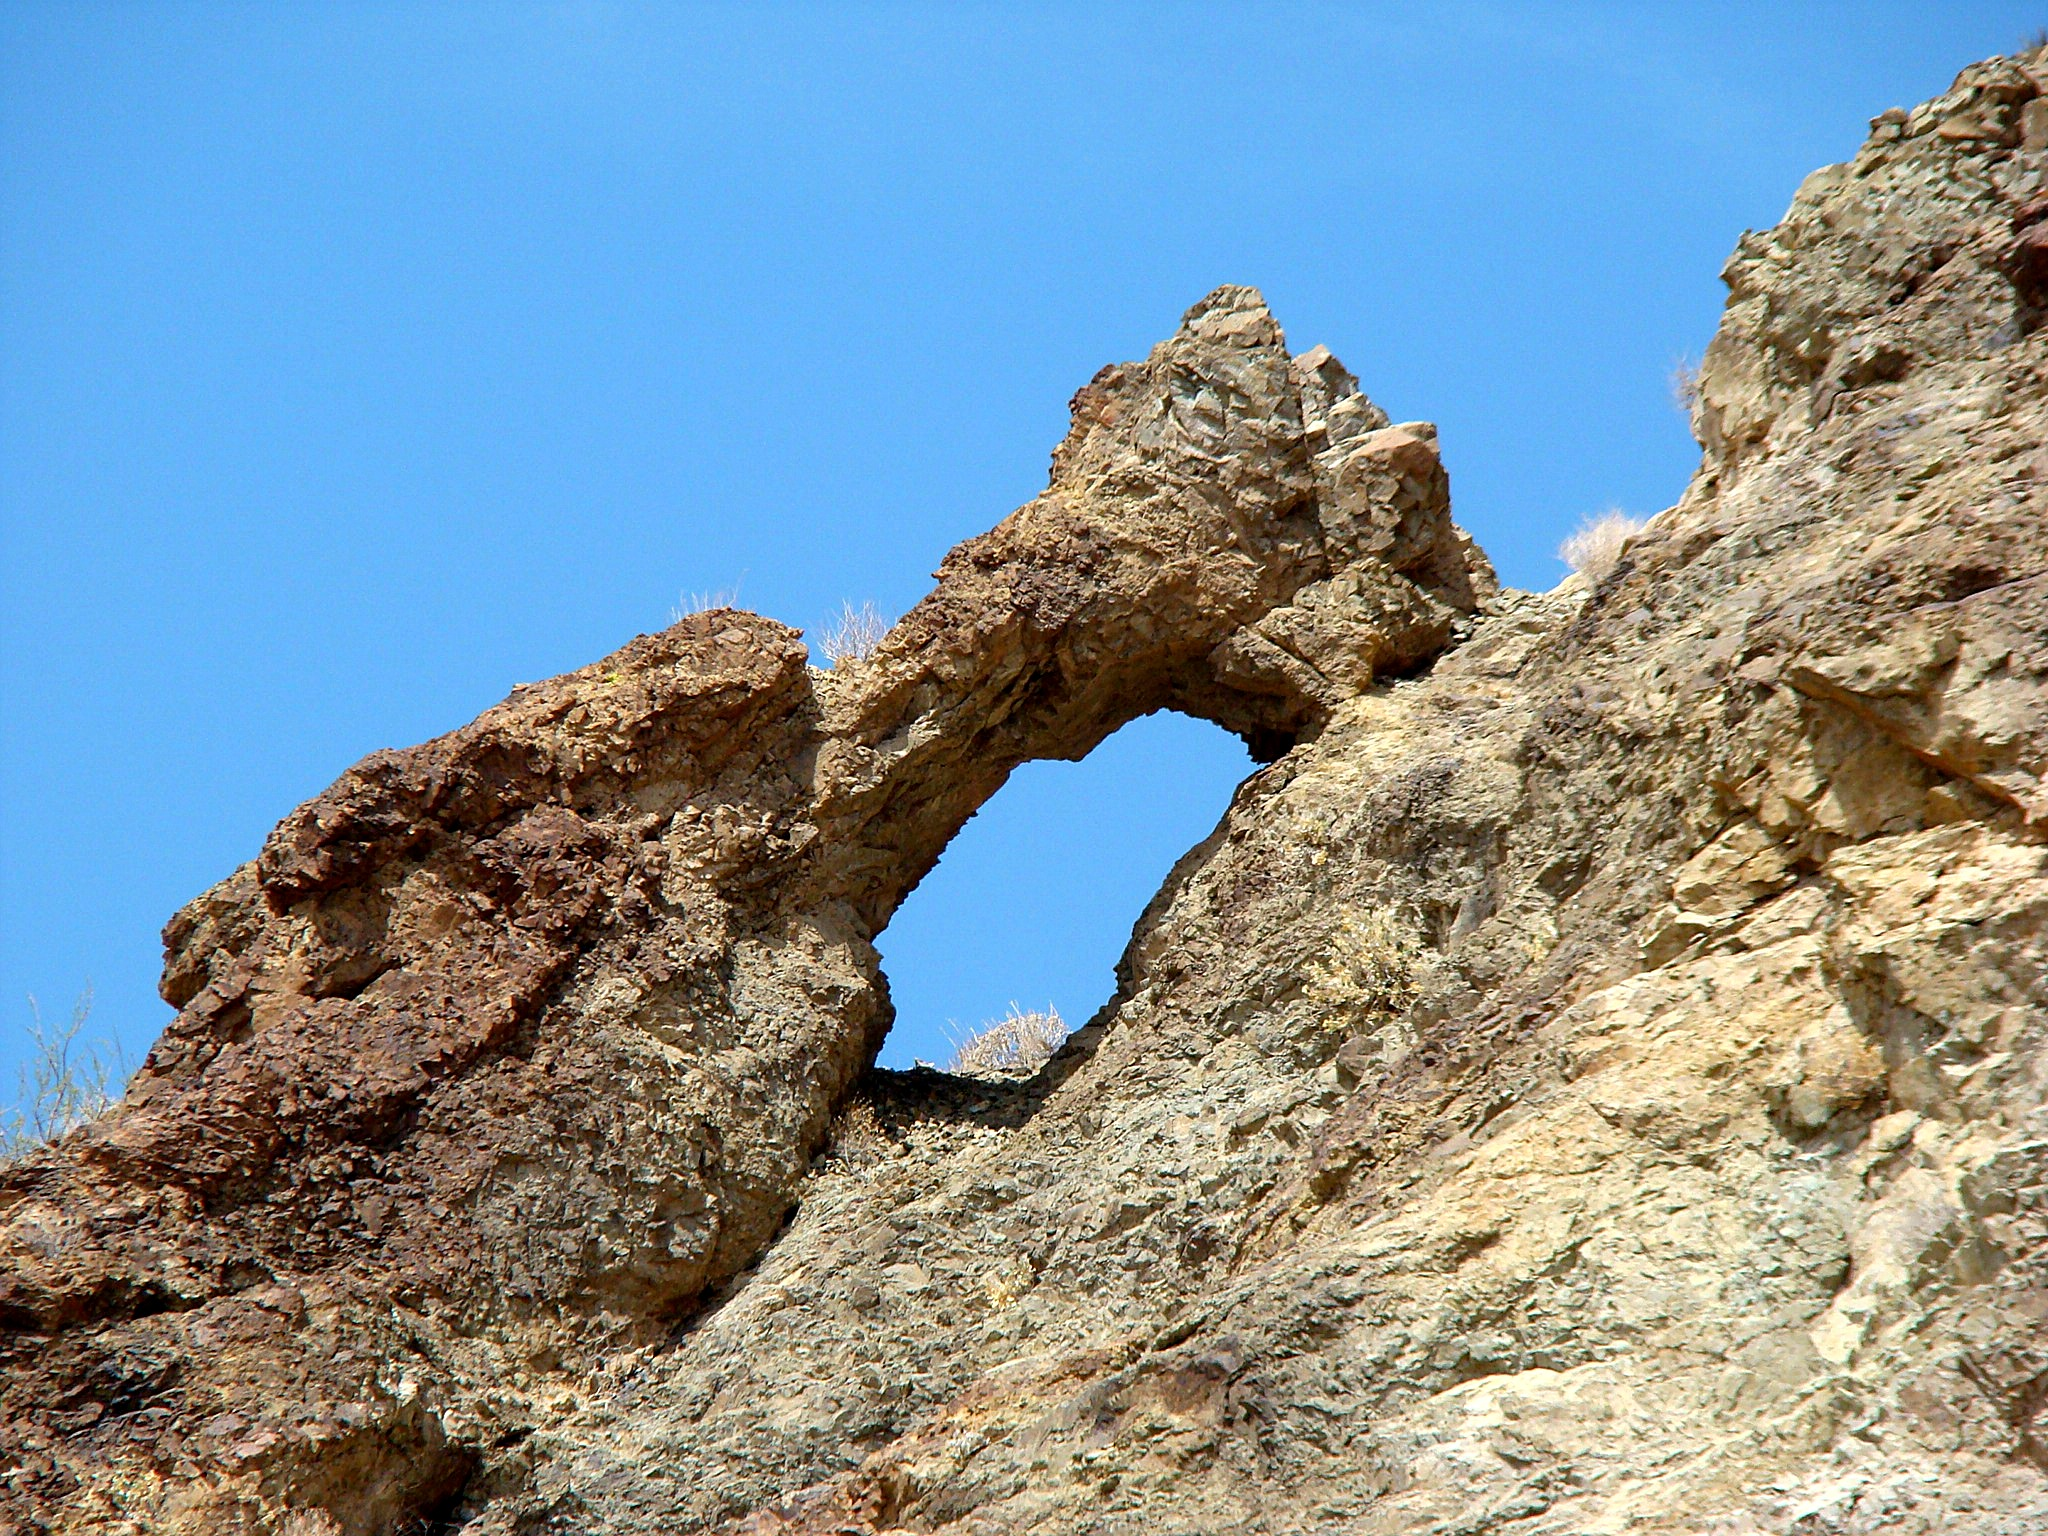 Erosion Mountains Rock arch  erosionRock Erosion